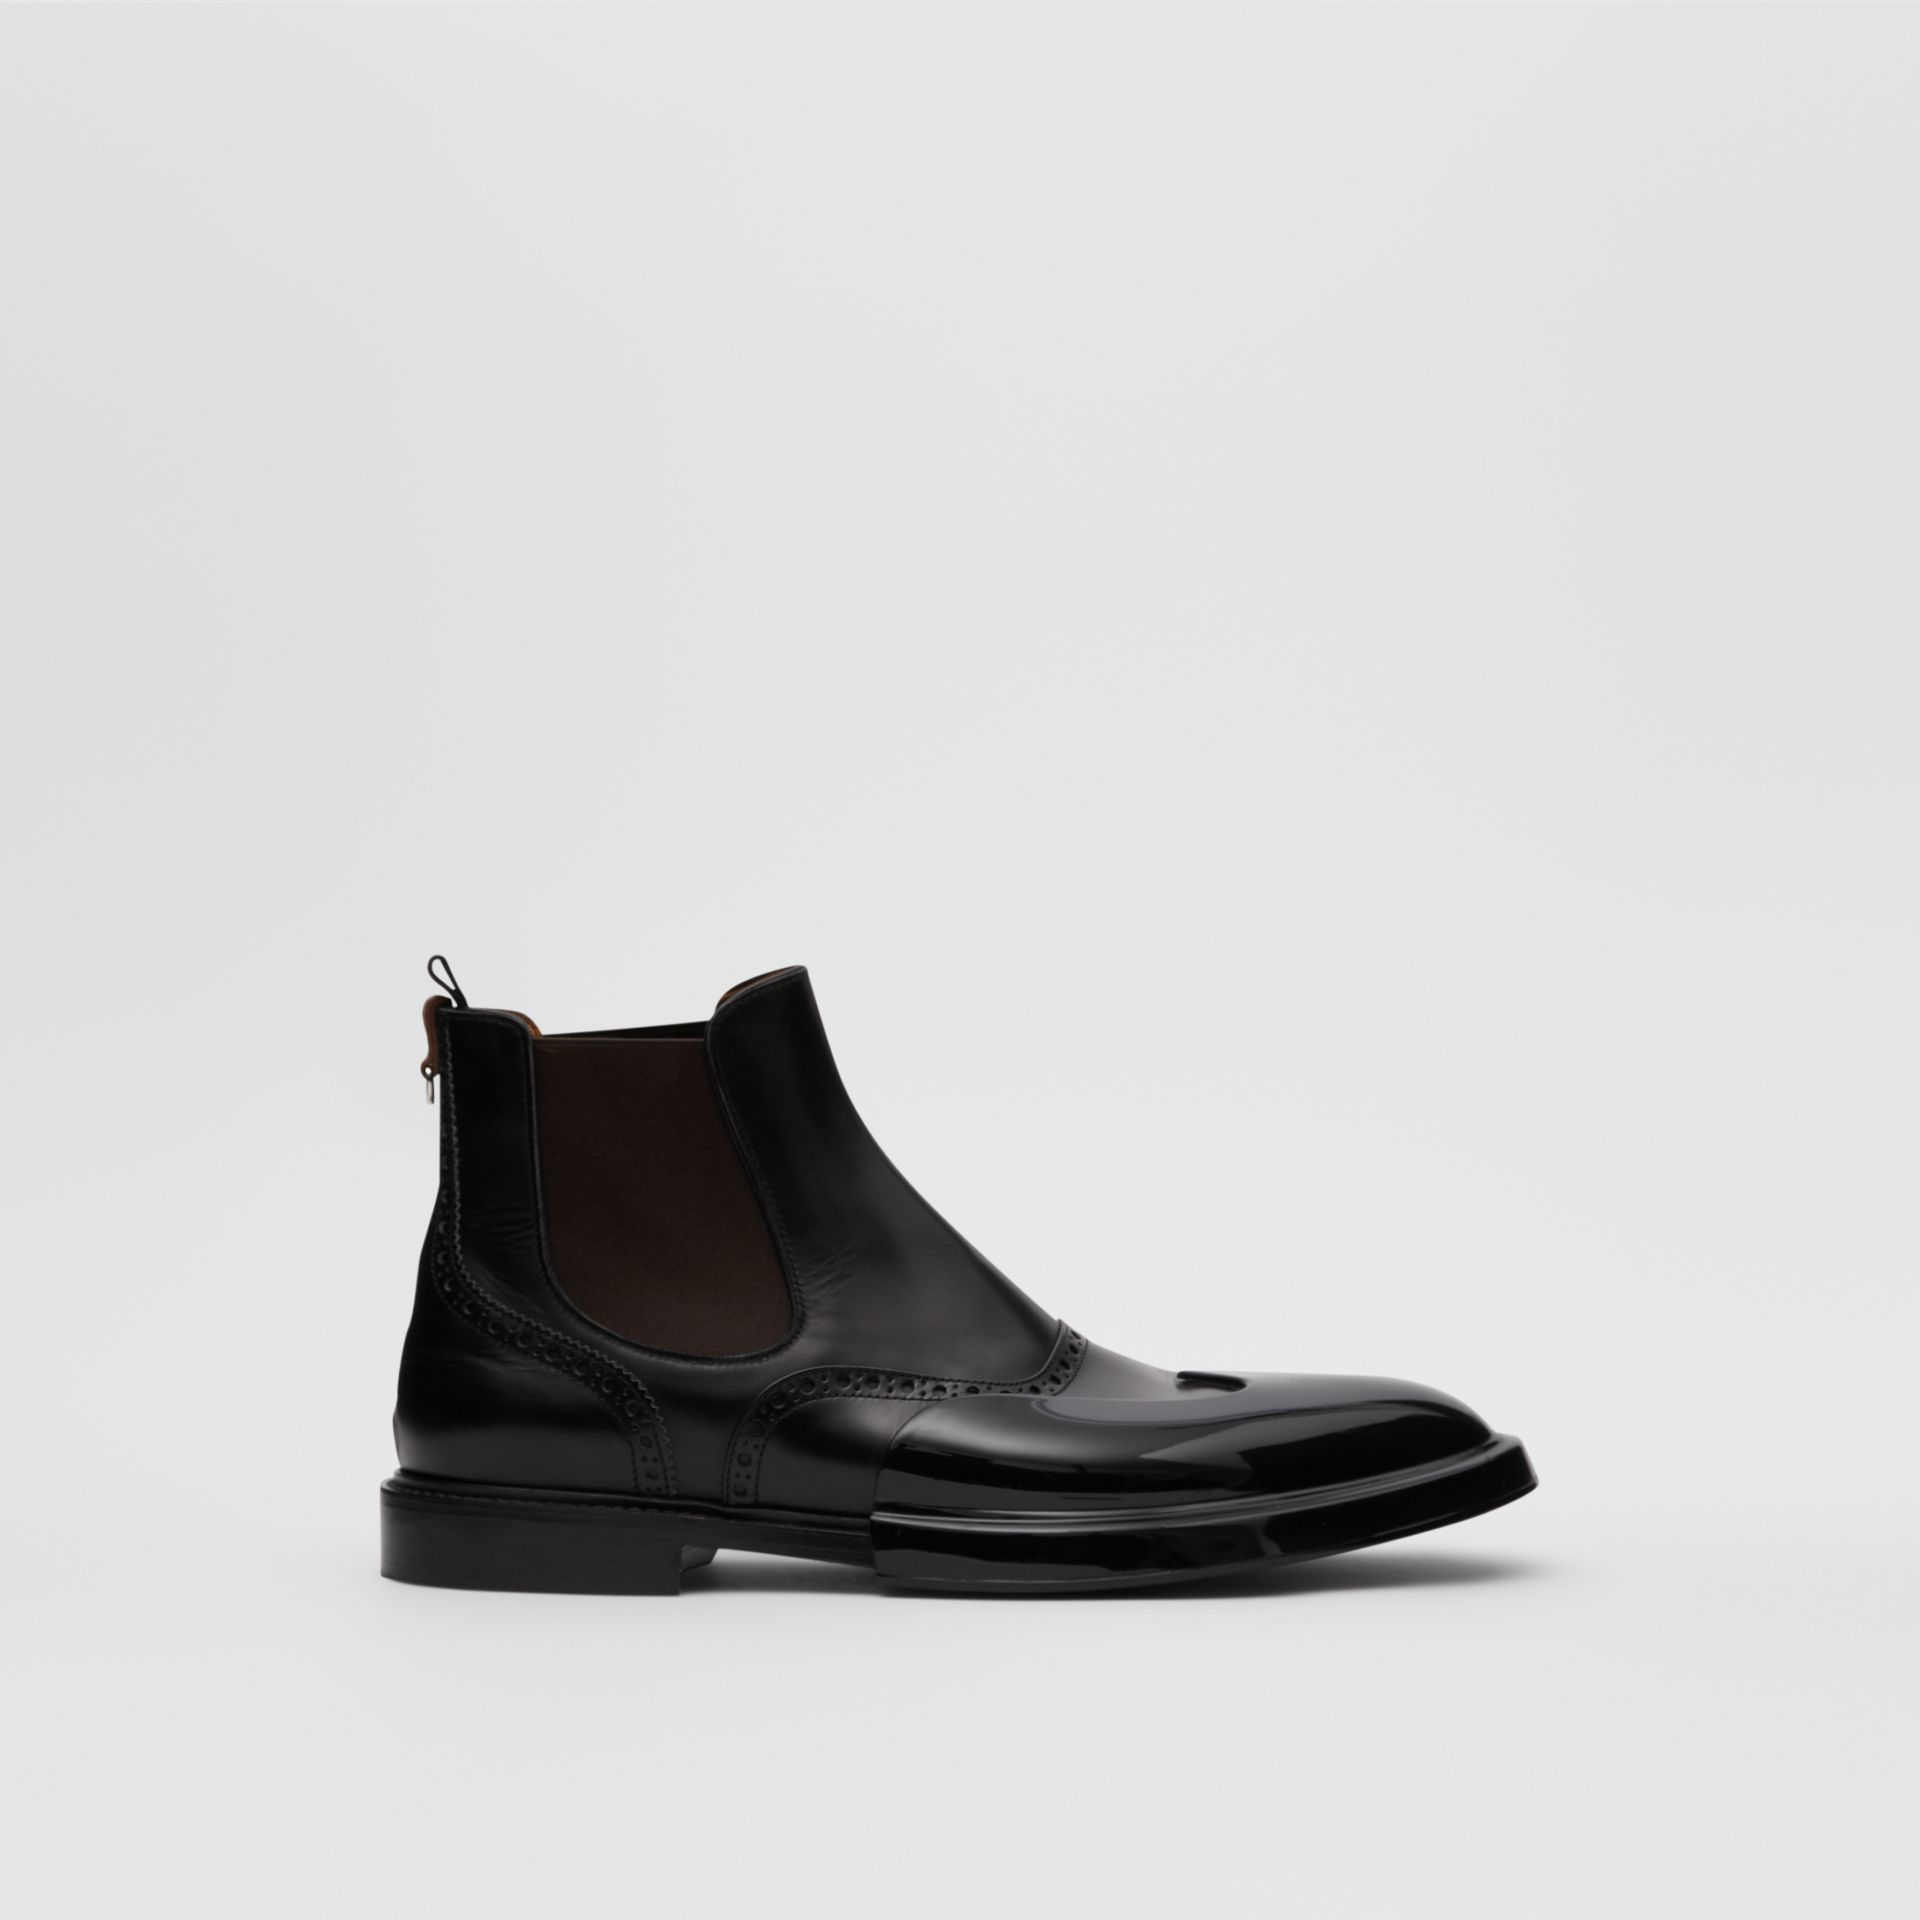 Toe Cap Detail Leather Chelsea Boots in Black | Burberry - gallery image 4